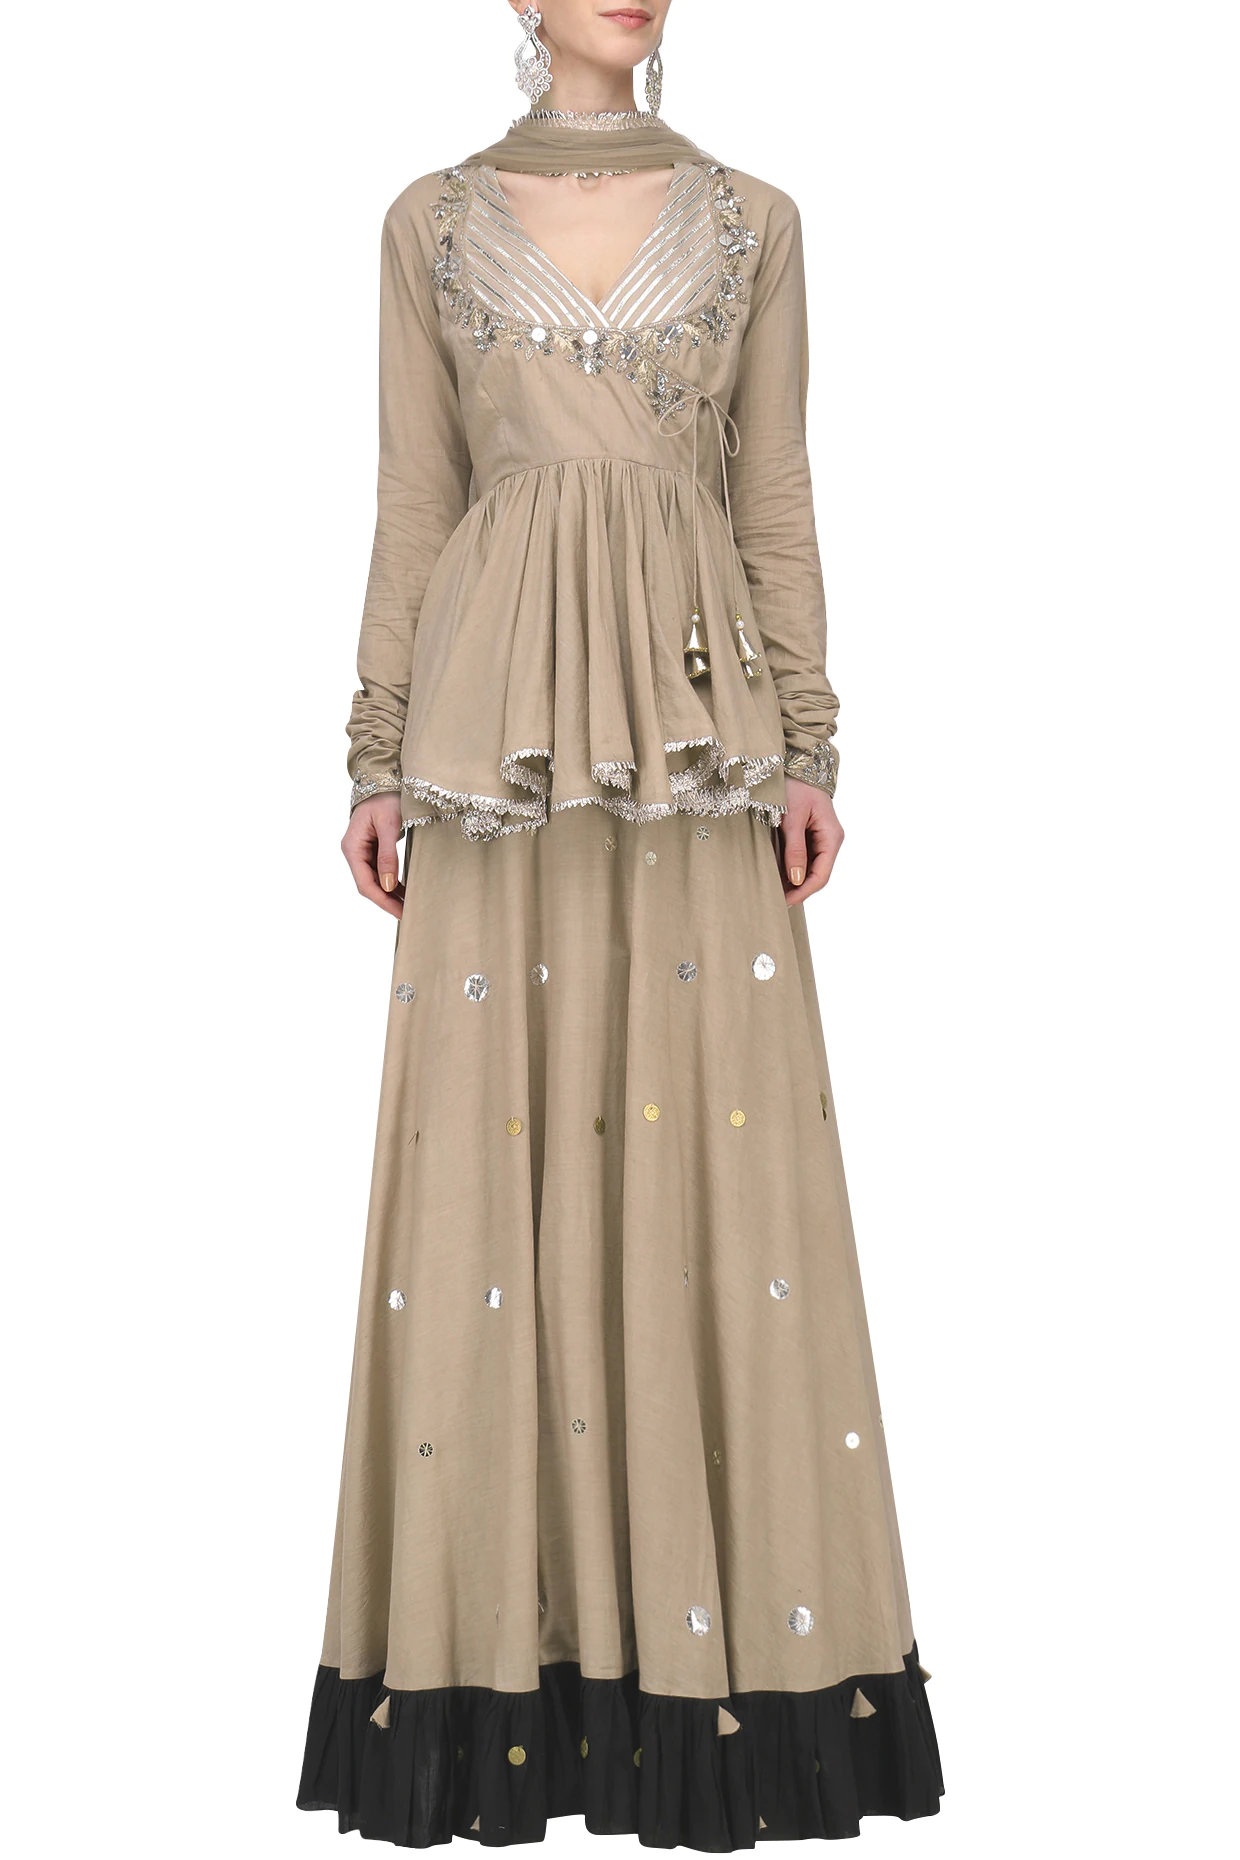 Beige Metal Sequins Embroidered Lehenga Set by Priyanka Singh-Handpicked for You